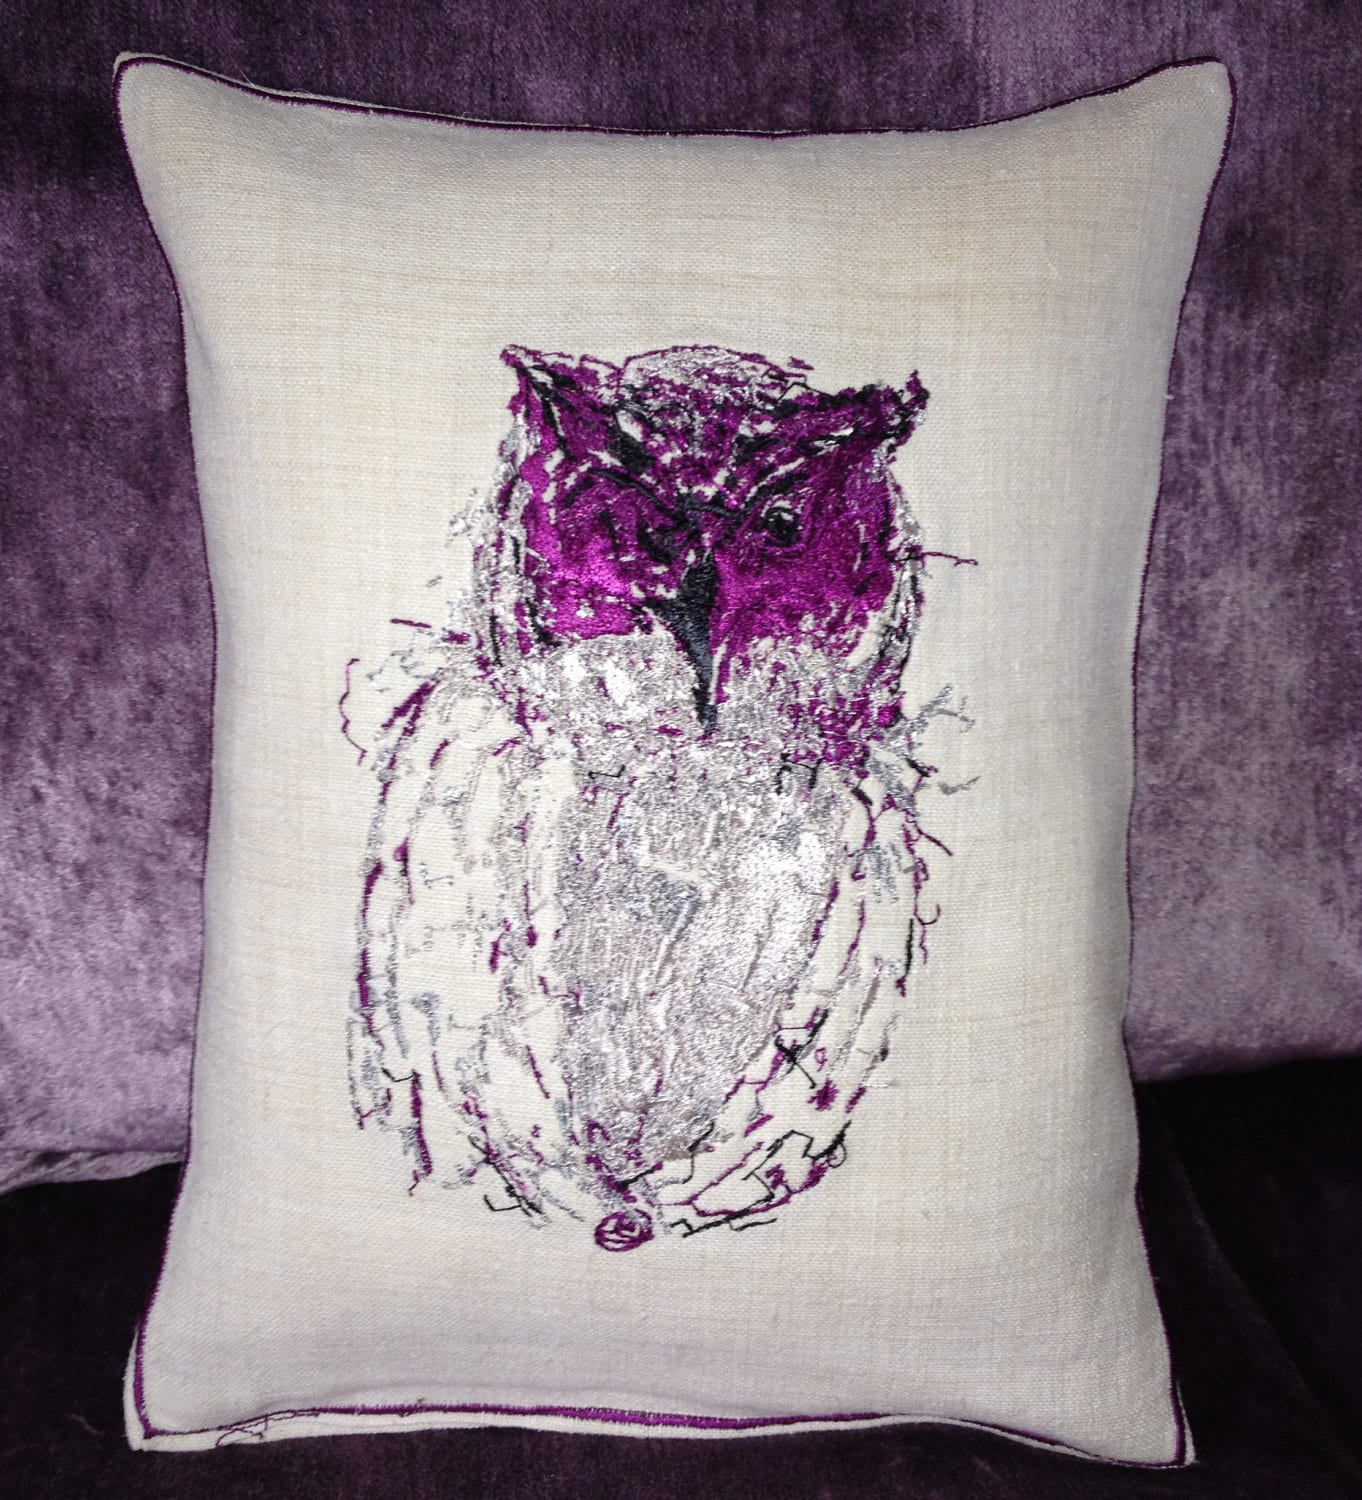 Tatty Owl, Embroidery Art Throw Cushion - Vintage Linen